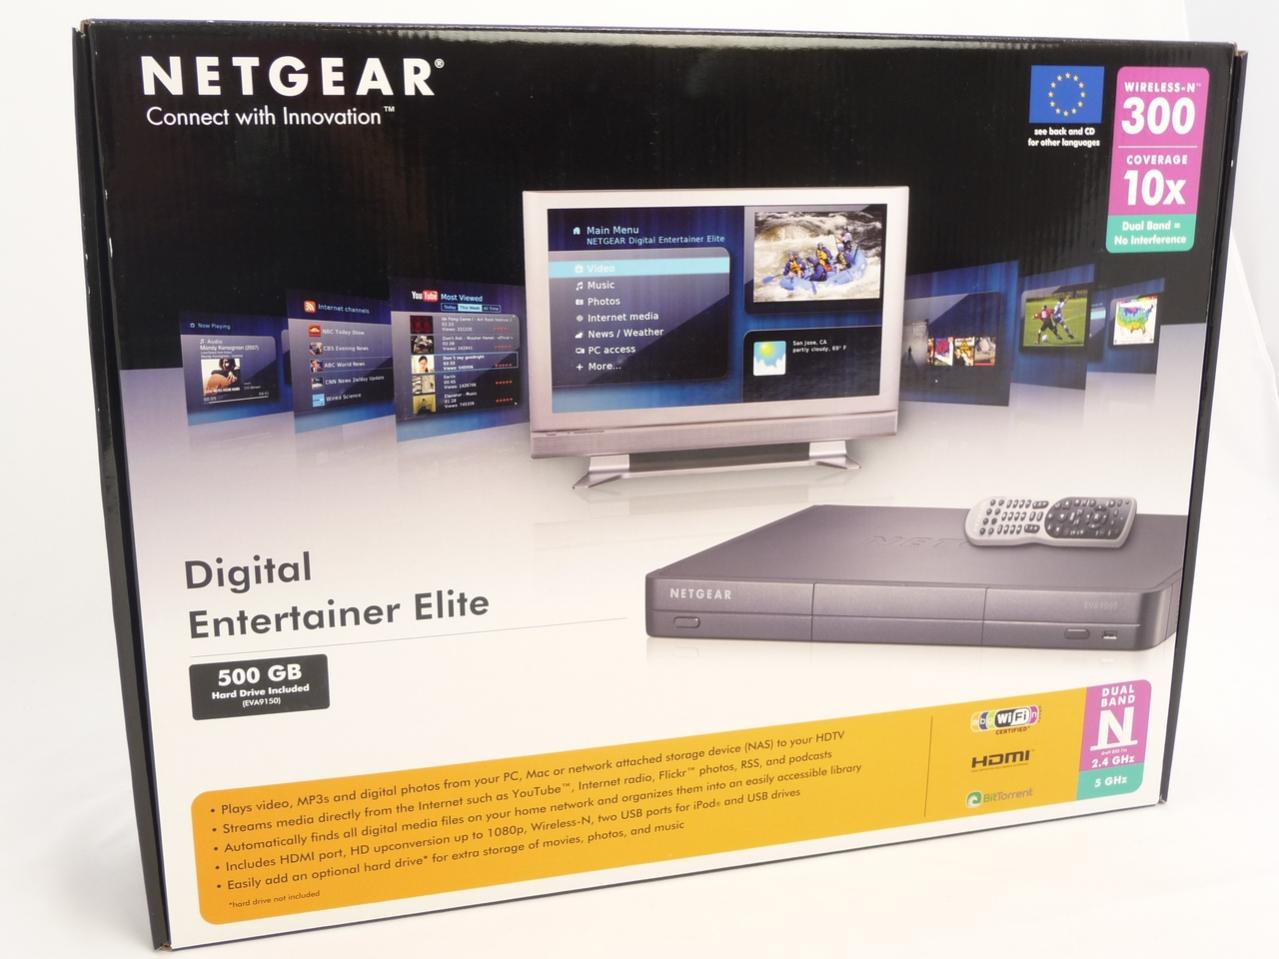 DOWNLOAD DRIVERS: NETGEAR EVA9150 MEDIA PLAYER